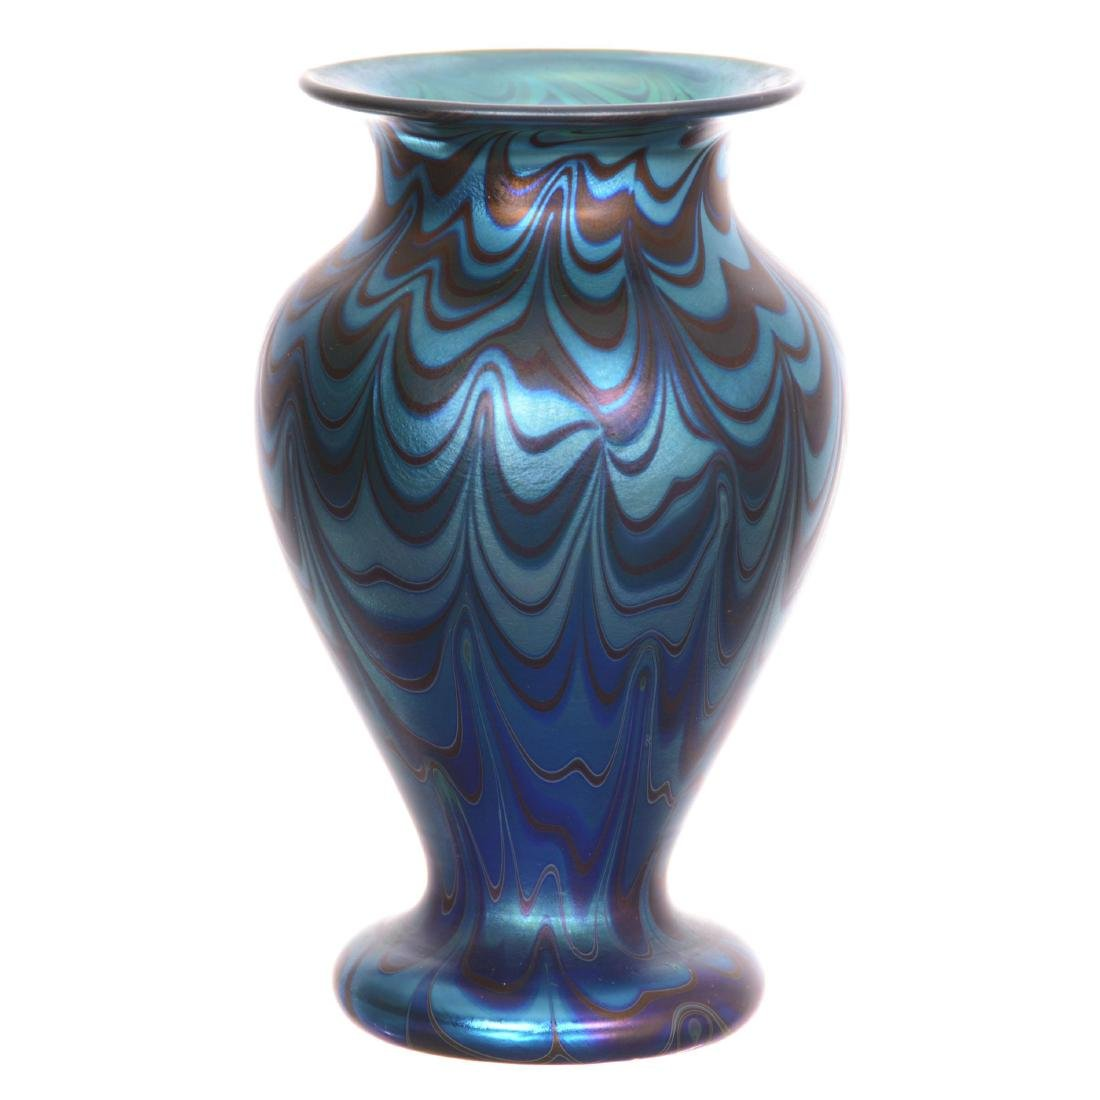 Contemporary Art Glass Vase